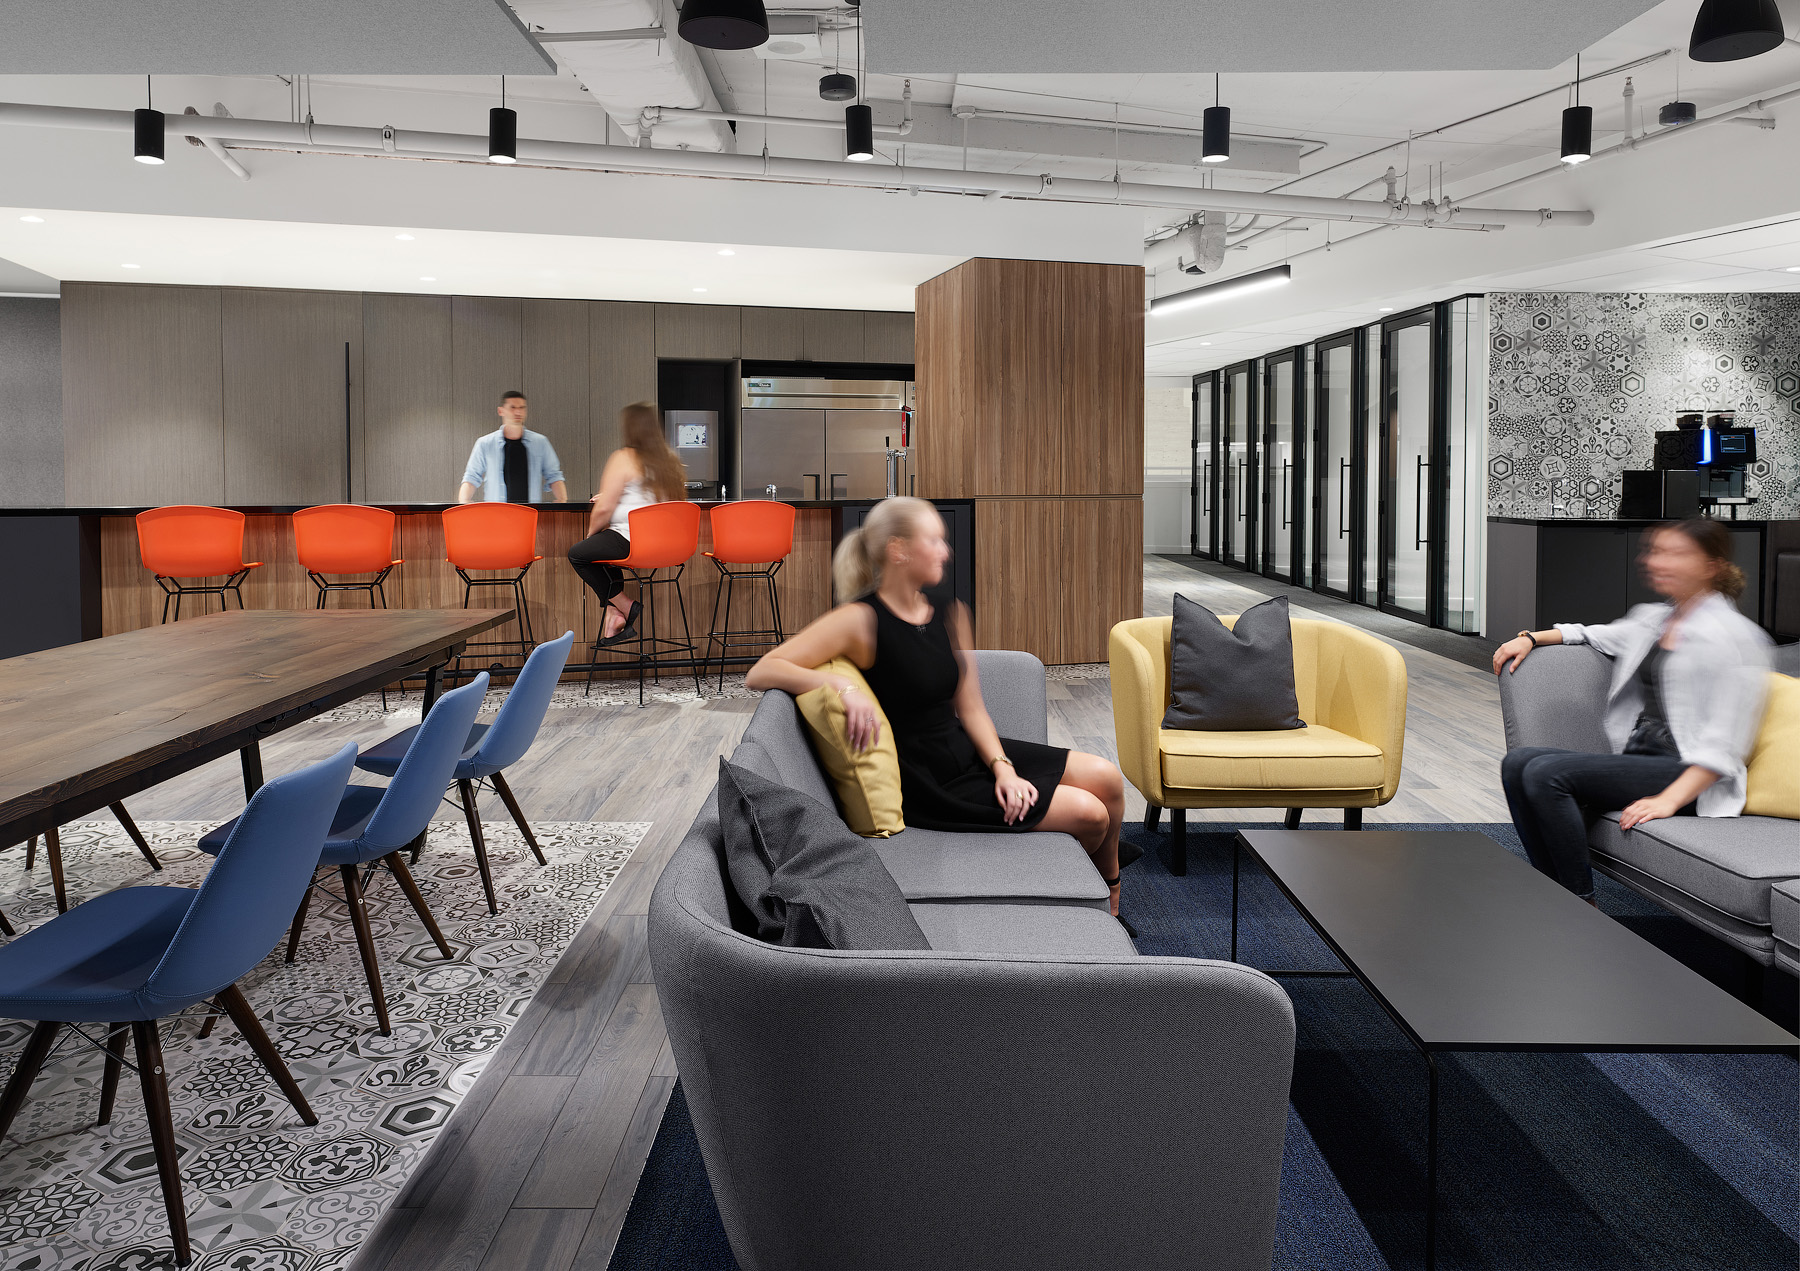 Optimus Toronto lunchroom with wood tables, patterned floor tiles, and orange, yellow, and blue chairs